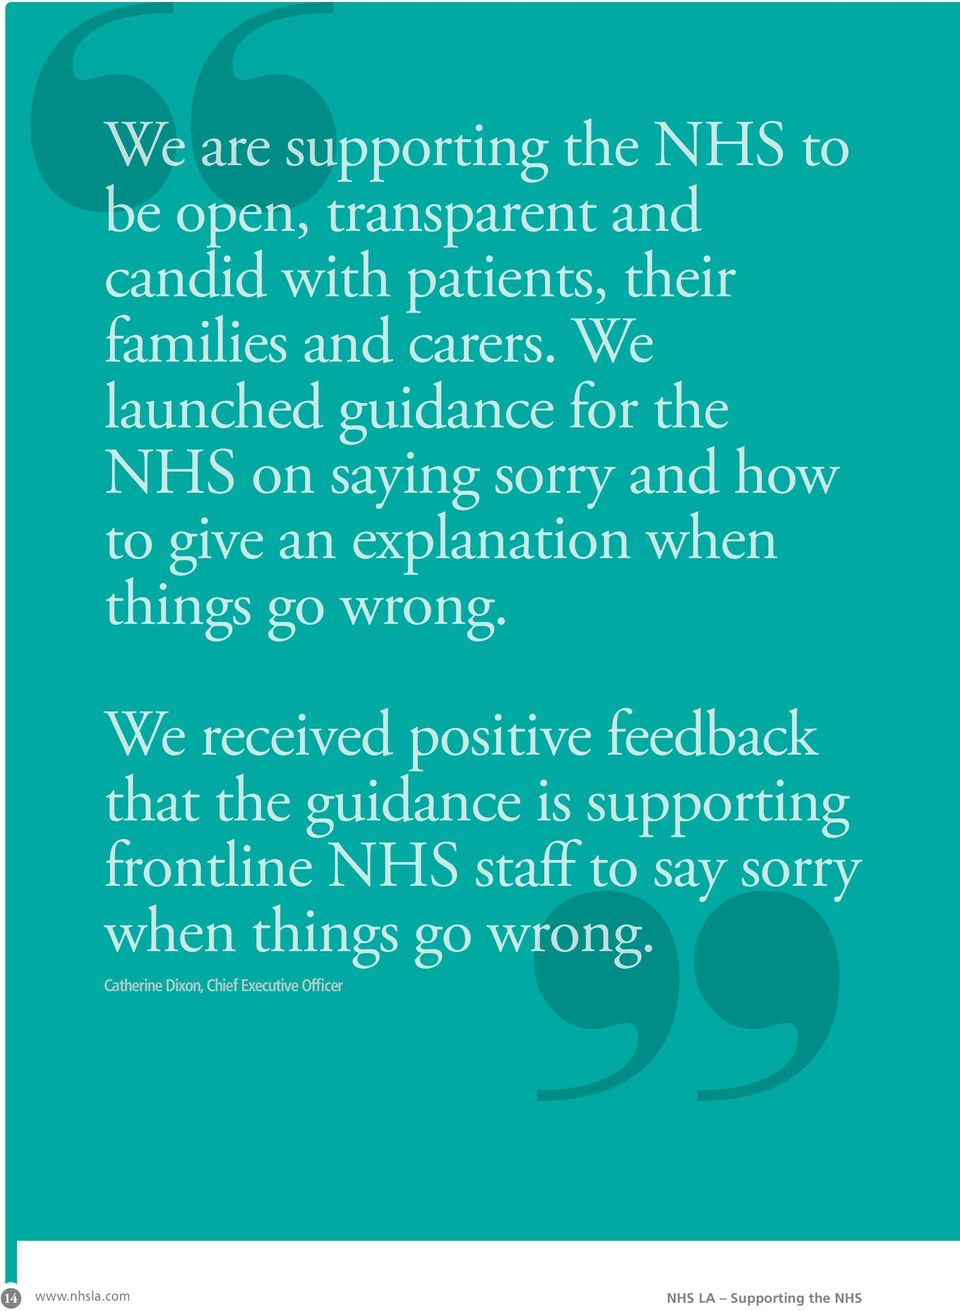 We launched guidance for the NHS on saying sorry and how to give an explanation when things go